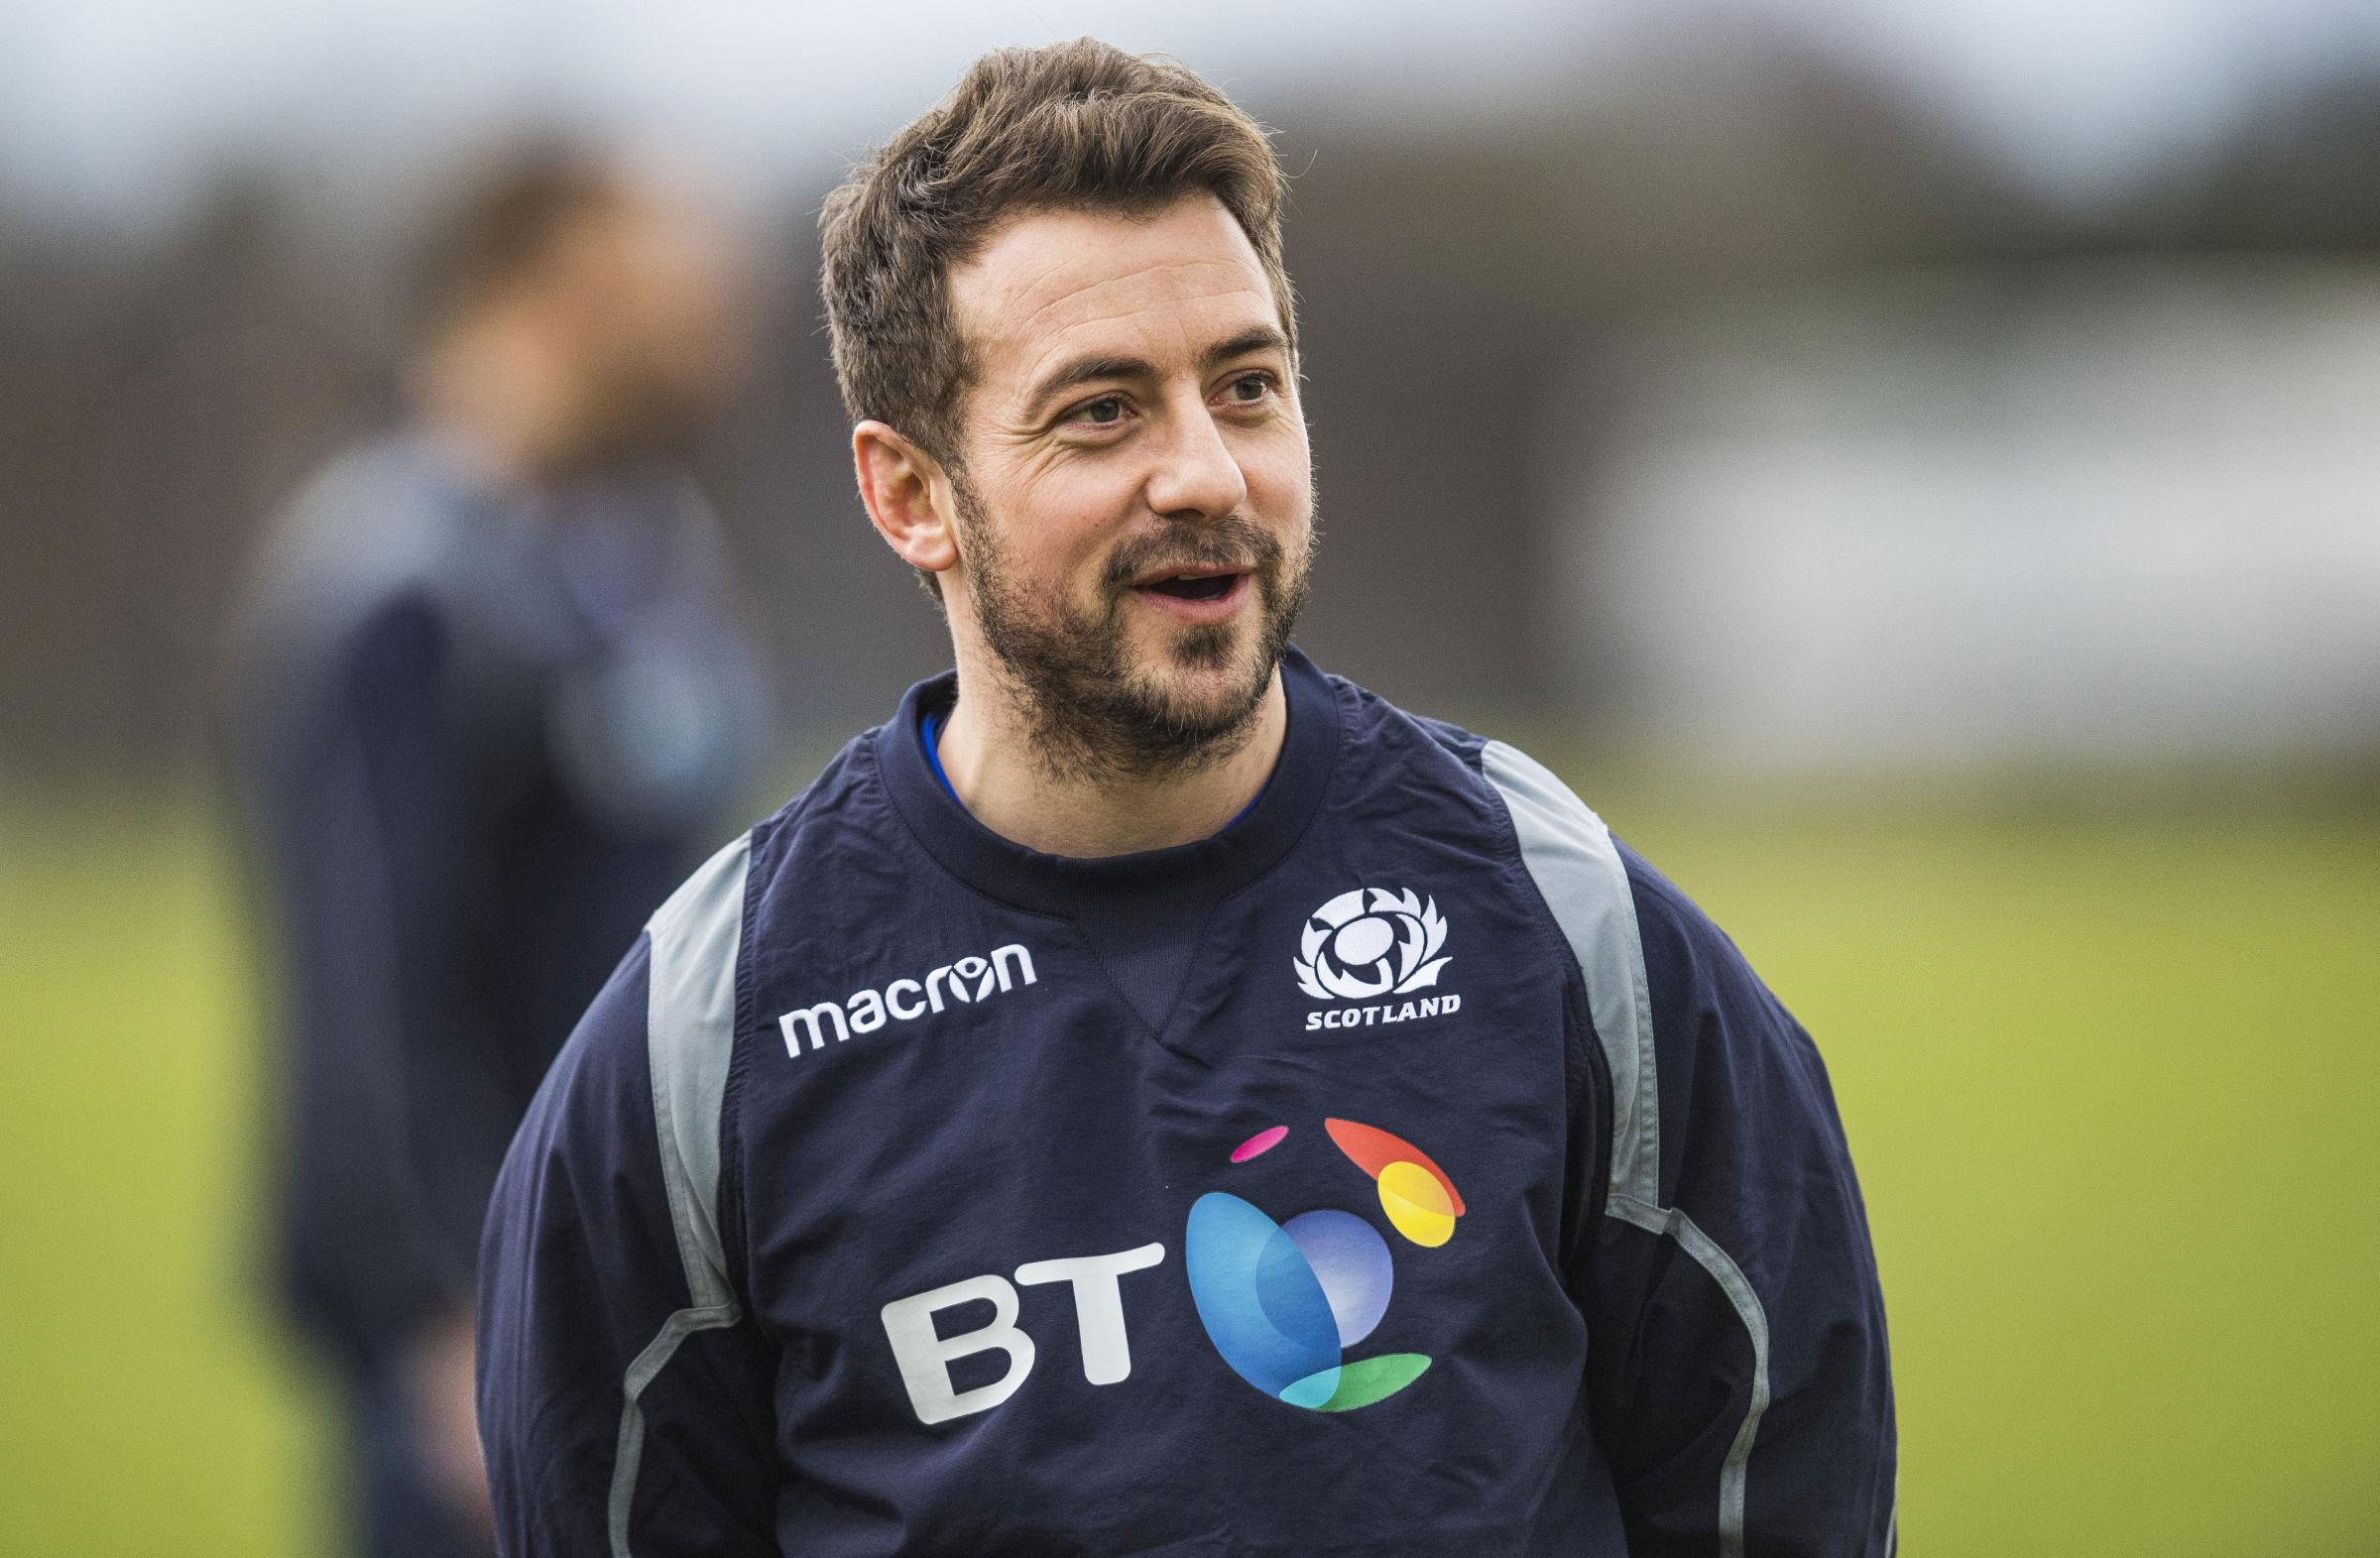 Laidlaw is back at scrum-half for Scotland